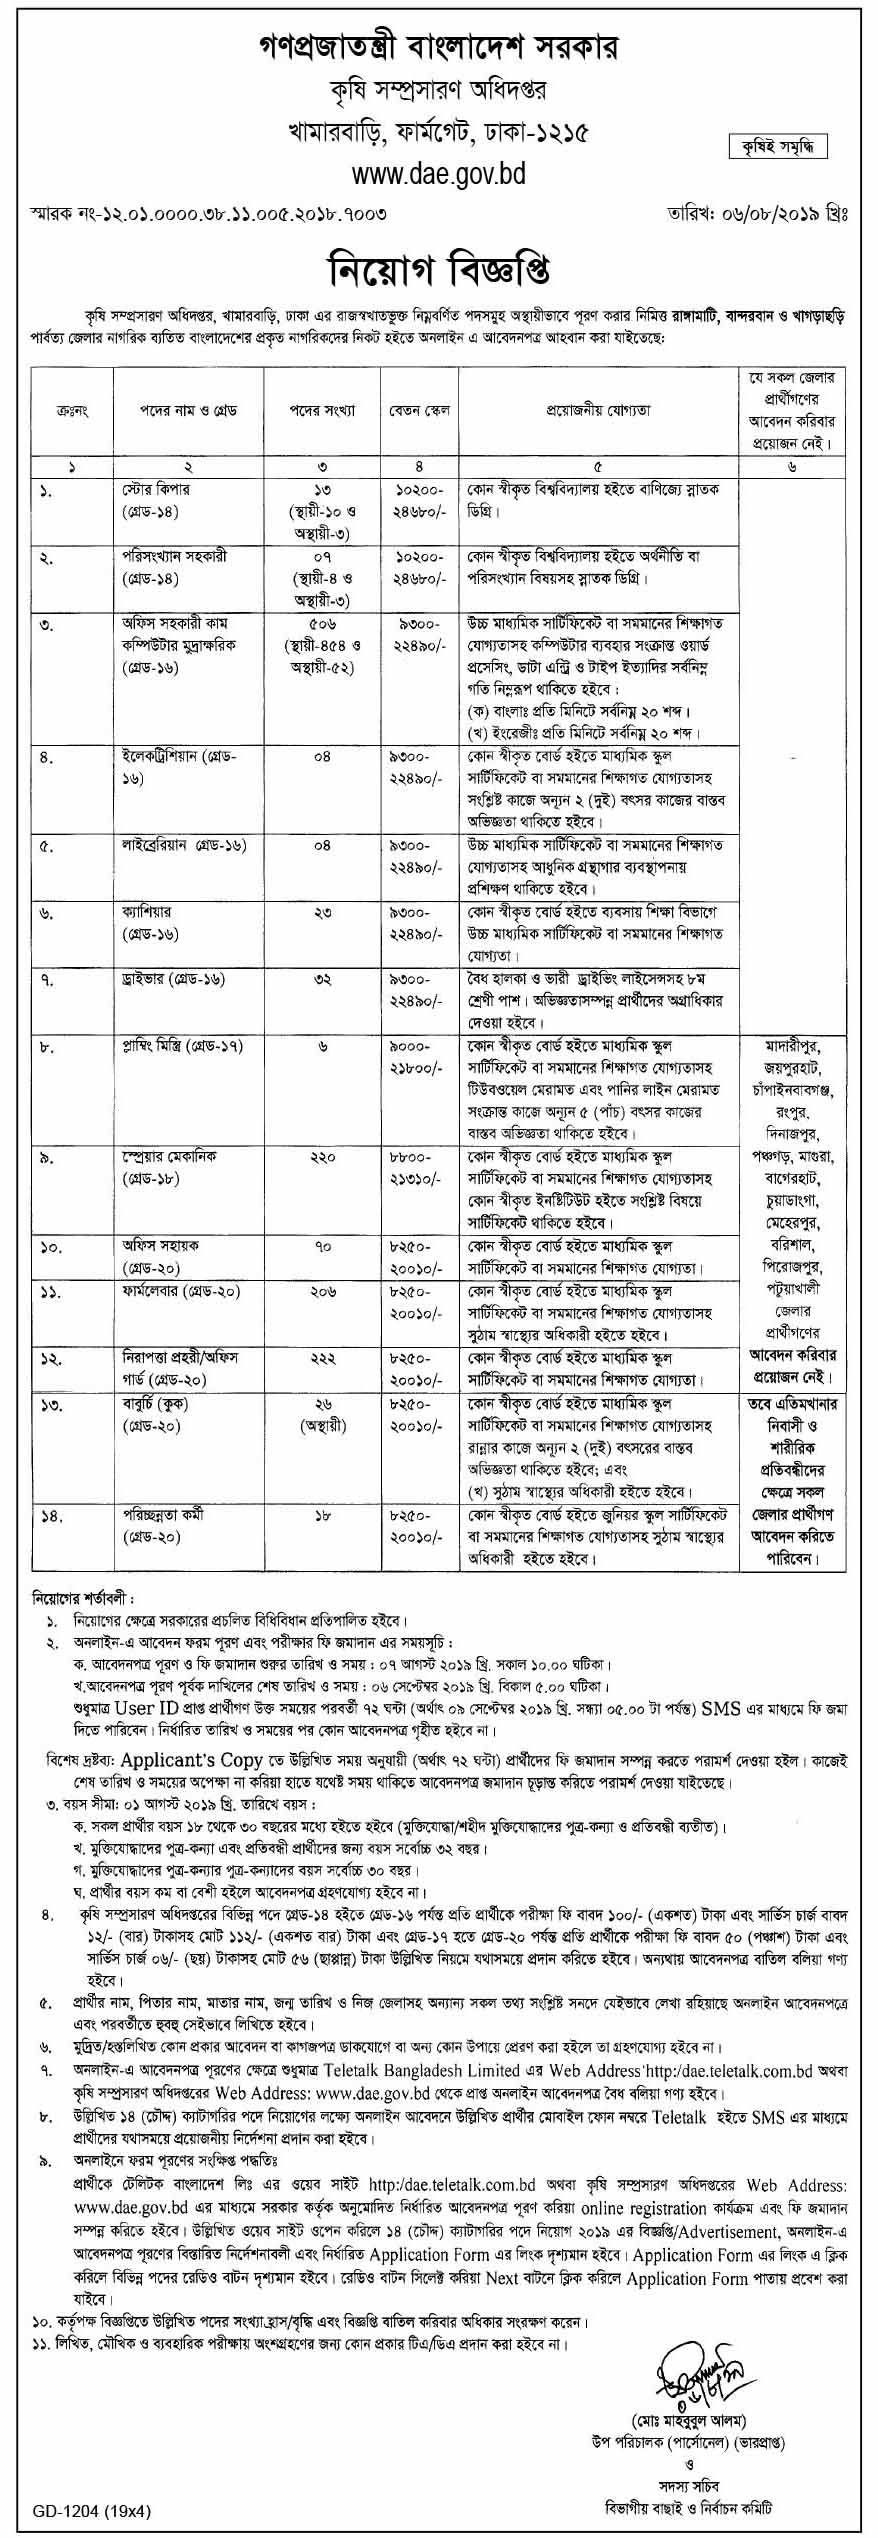 Department of Agricultural Extension Job Circular 2019